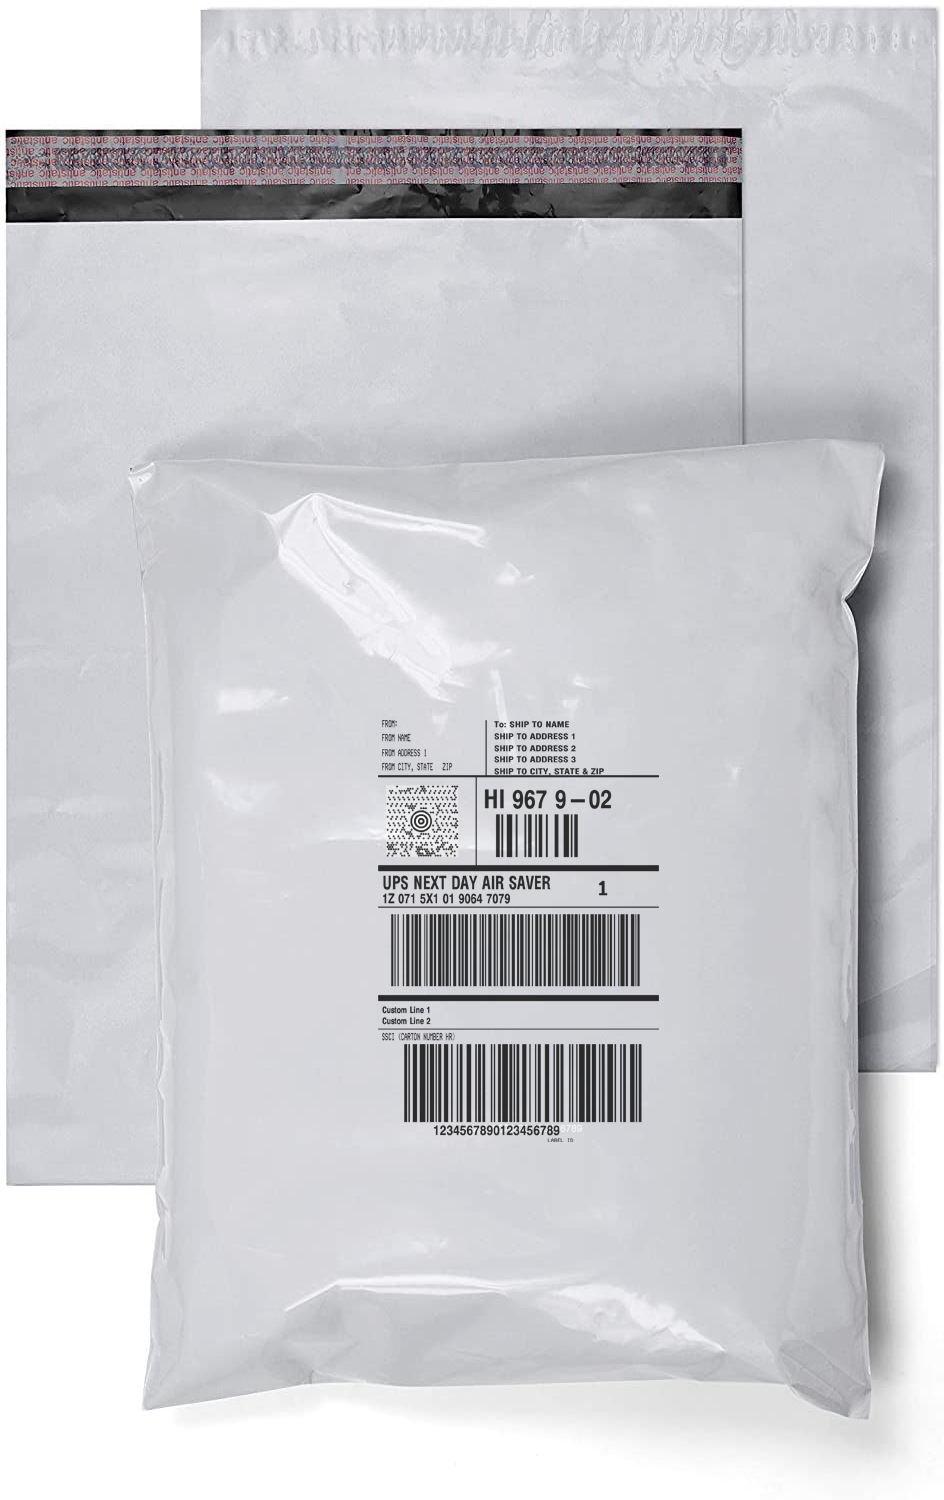 Print shipping labels onto shipping bags with Autobag printers